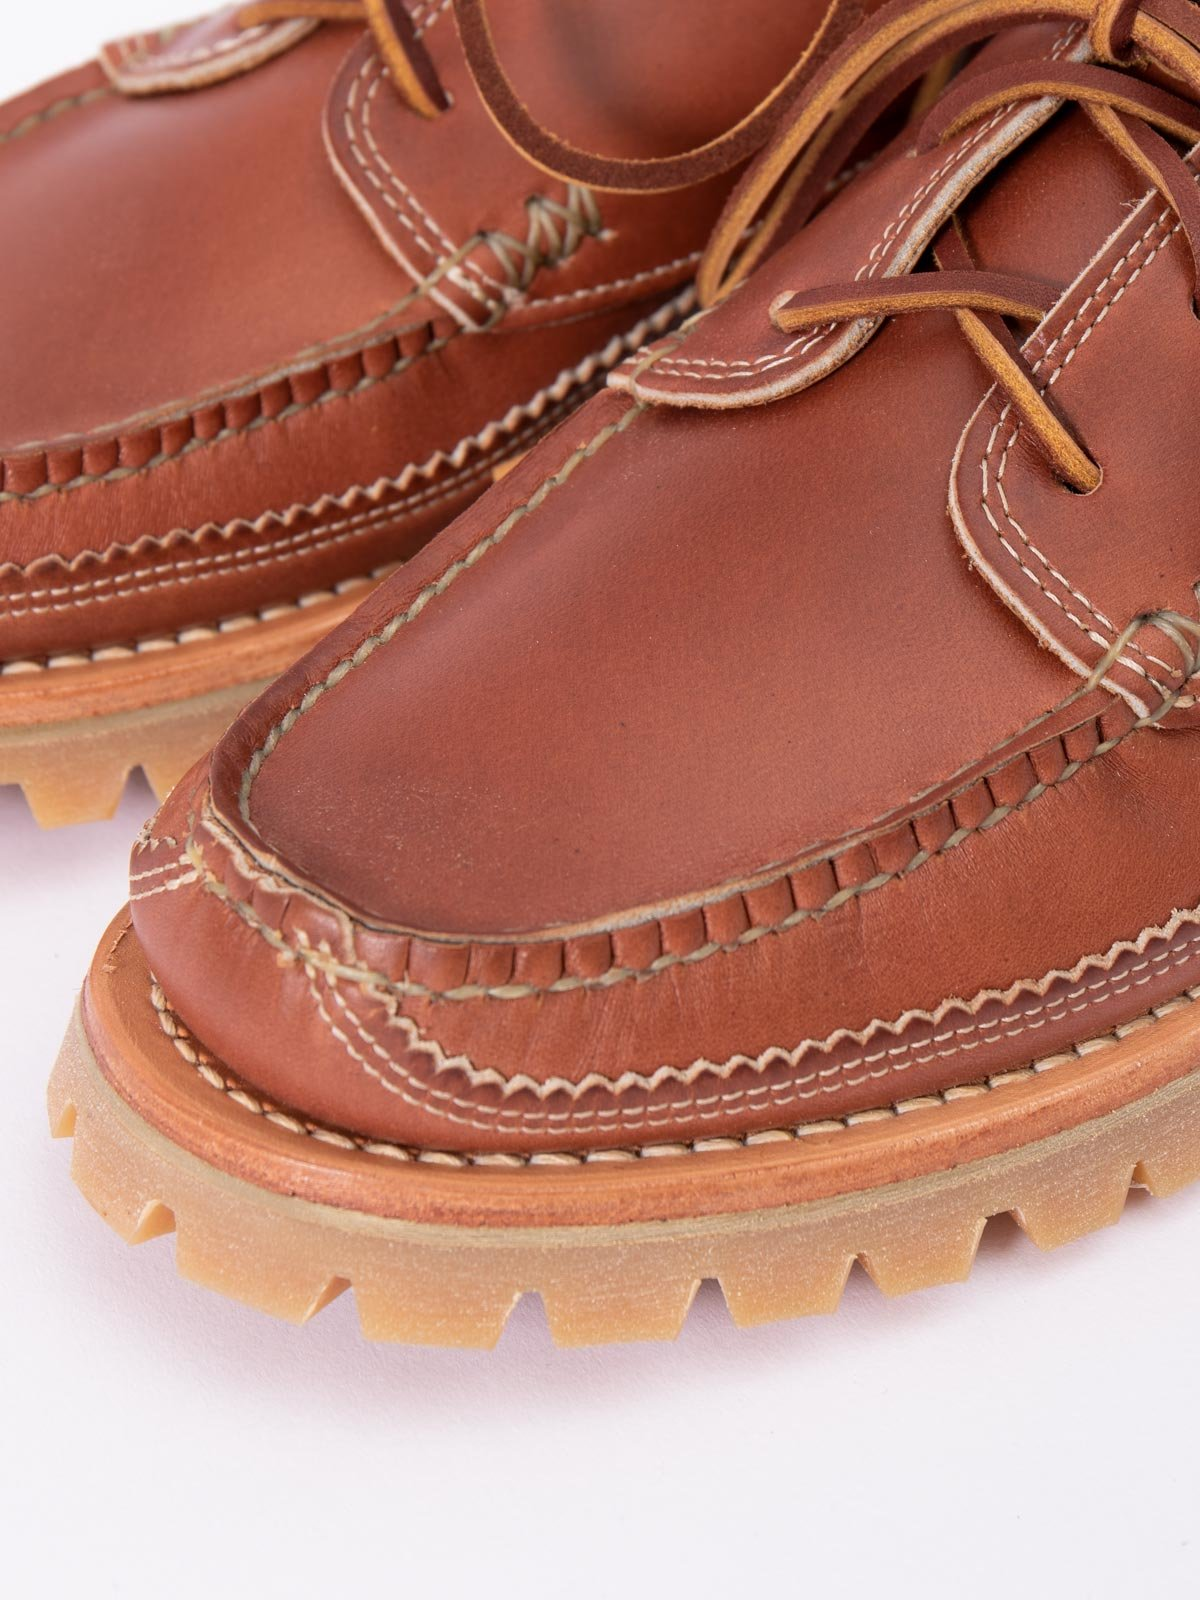 C WHISKEY DB BOAT SHOE W/ LUG SOLE EXCLUSIVE - Image 3